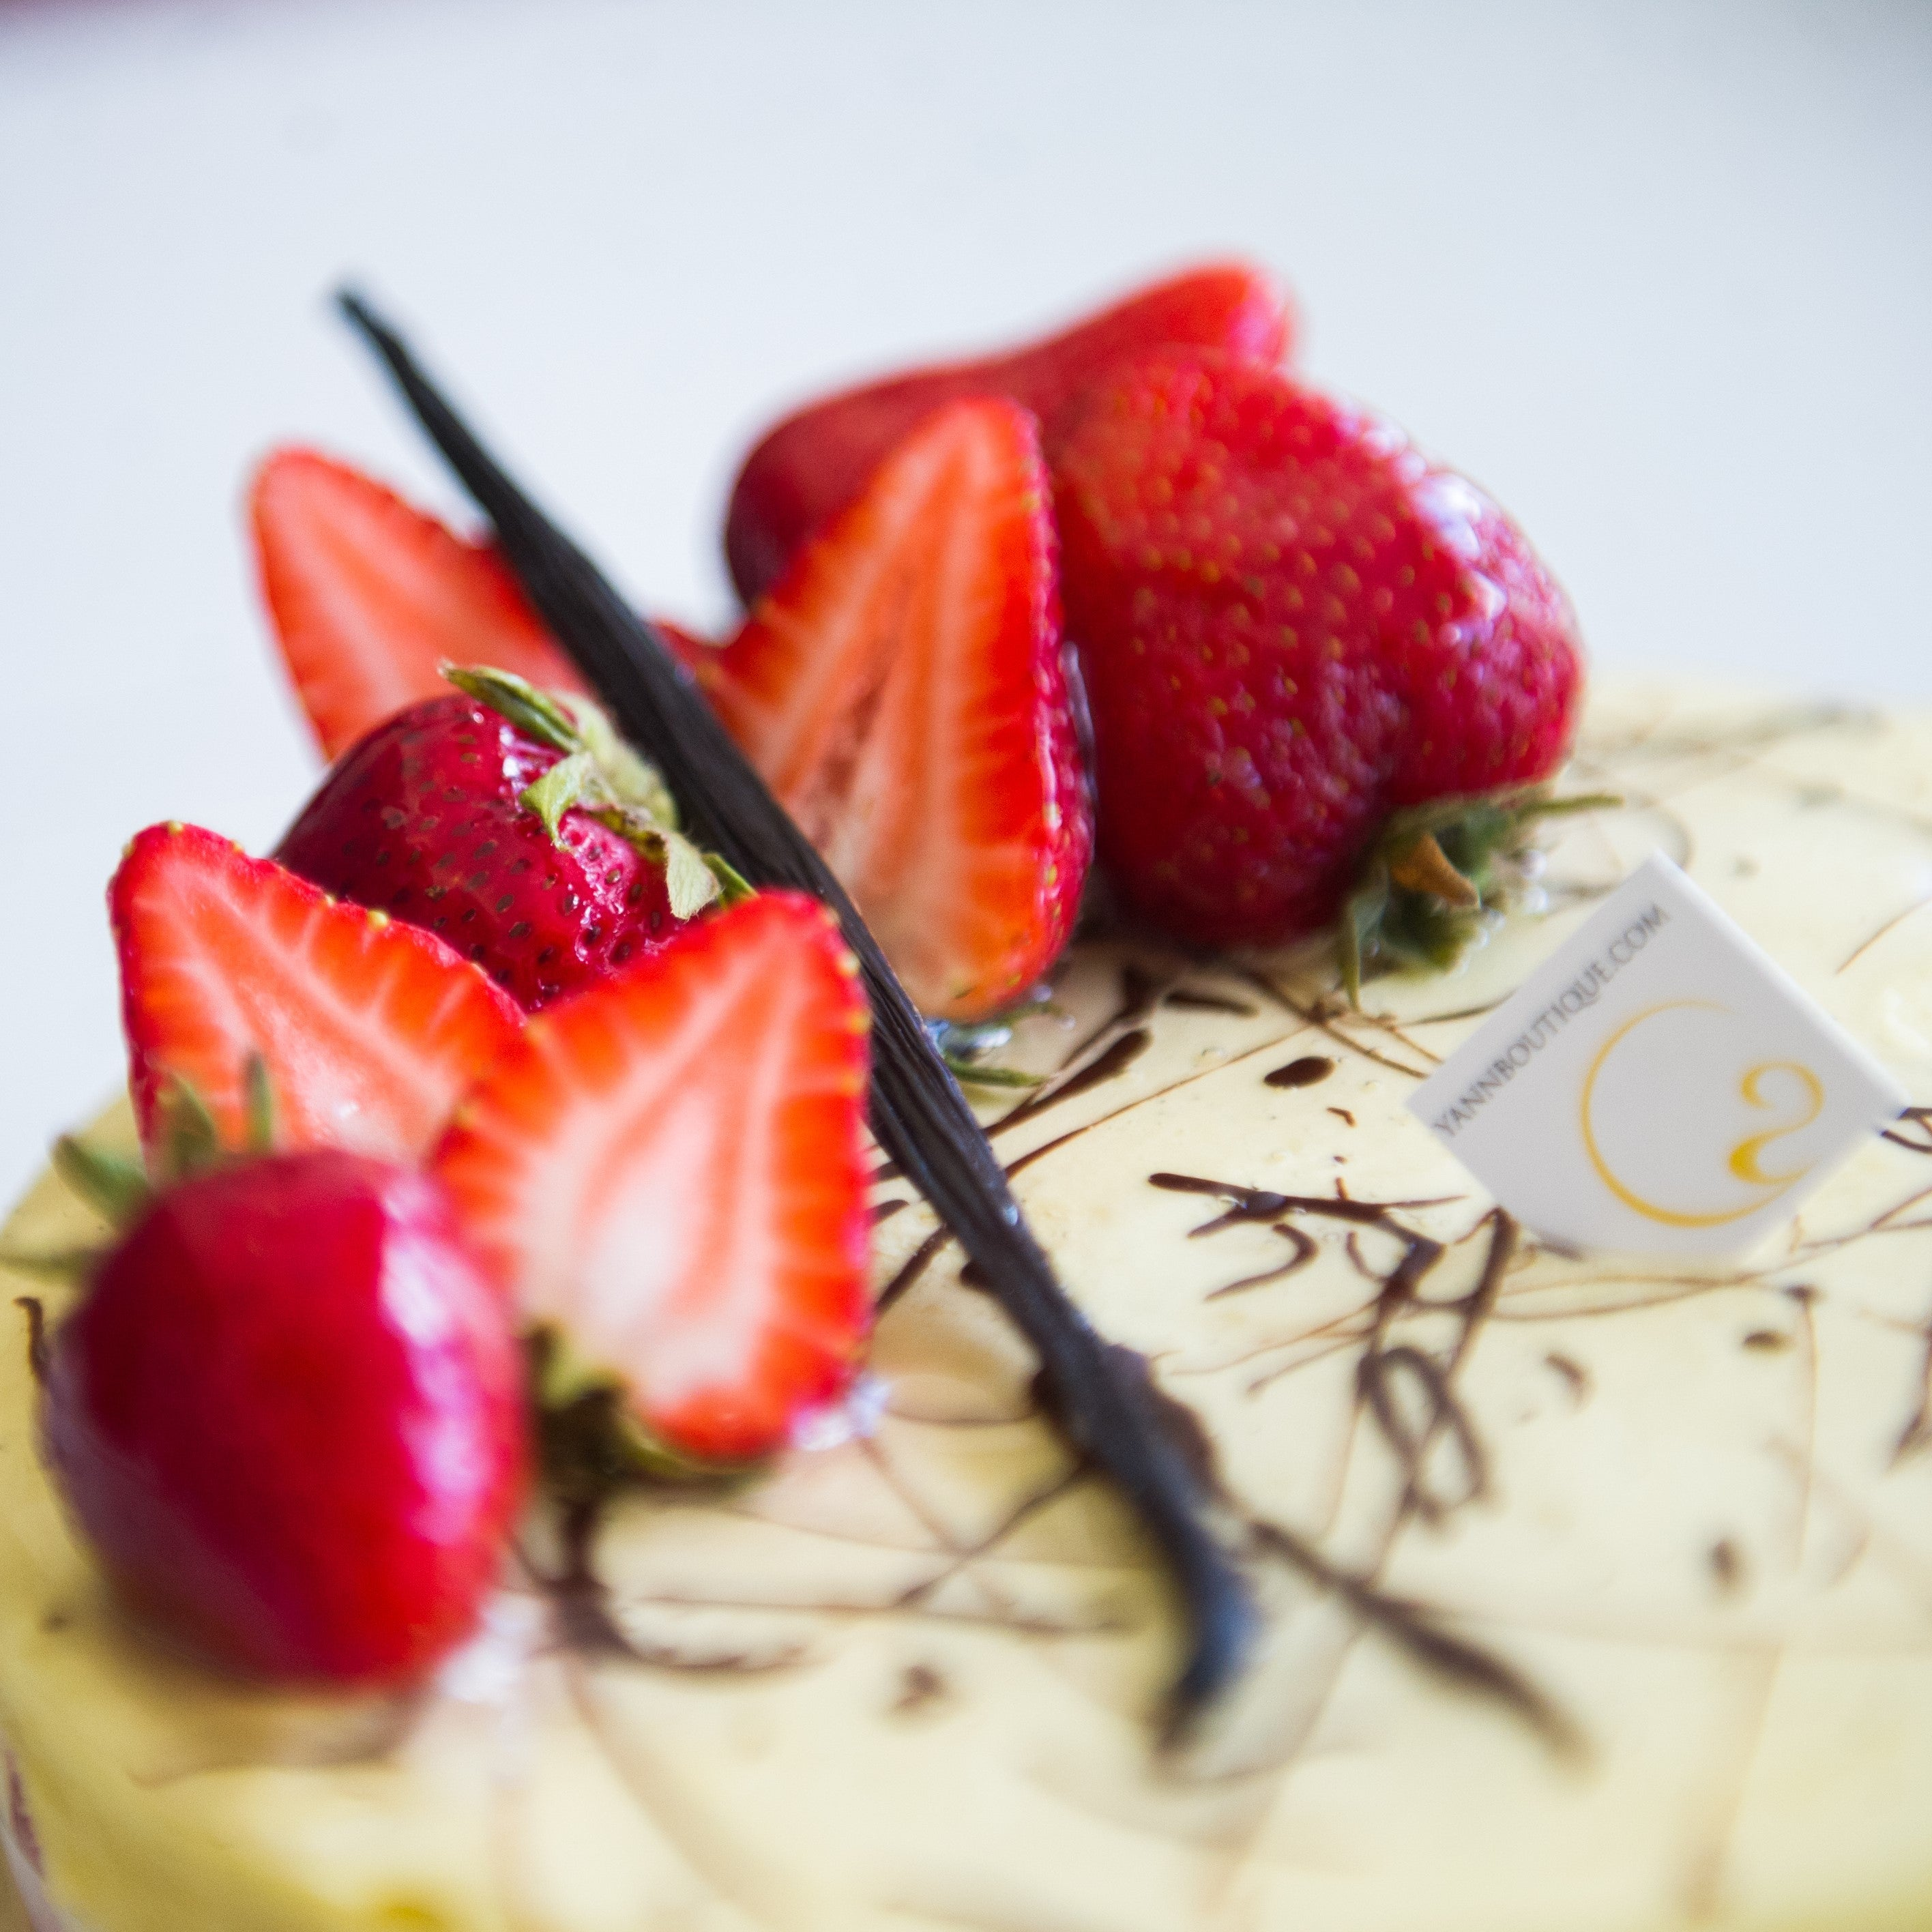 Our manager's favorite! Fraisier cake for July is the best of strawberries and vanilla, best choice of Calgary!